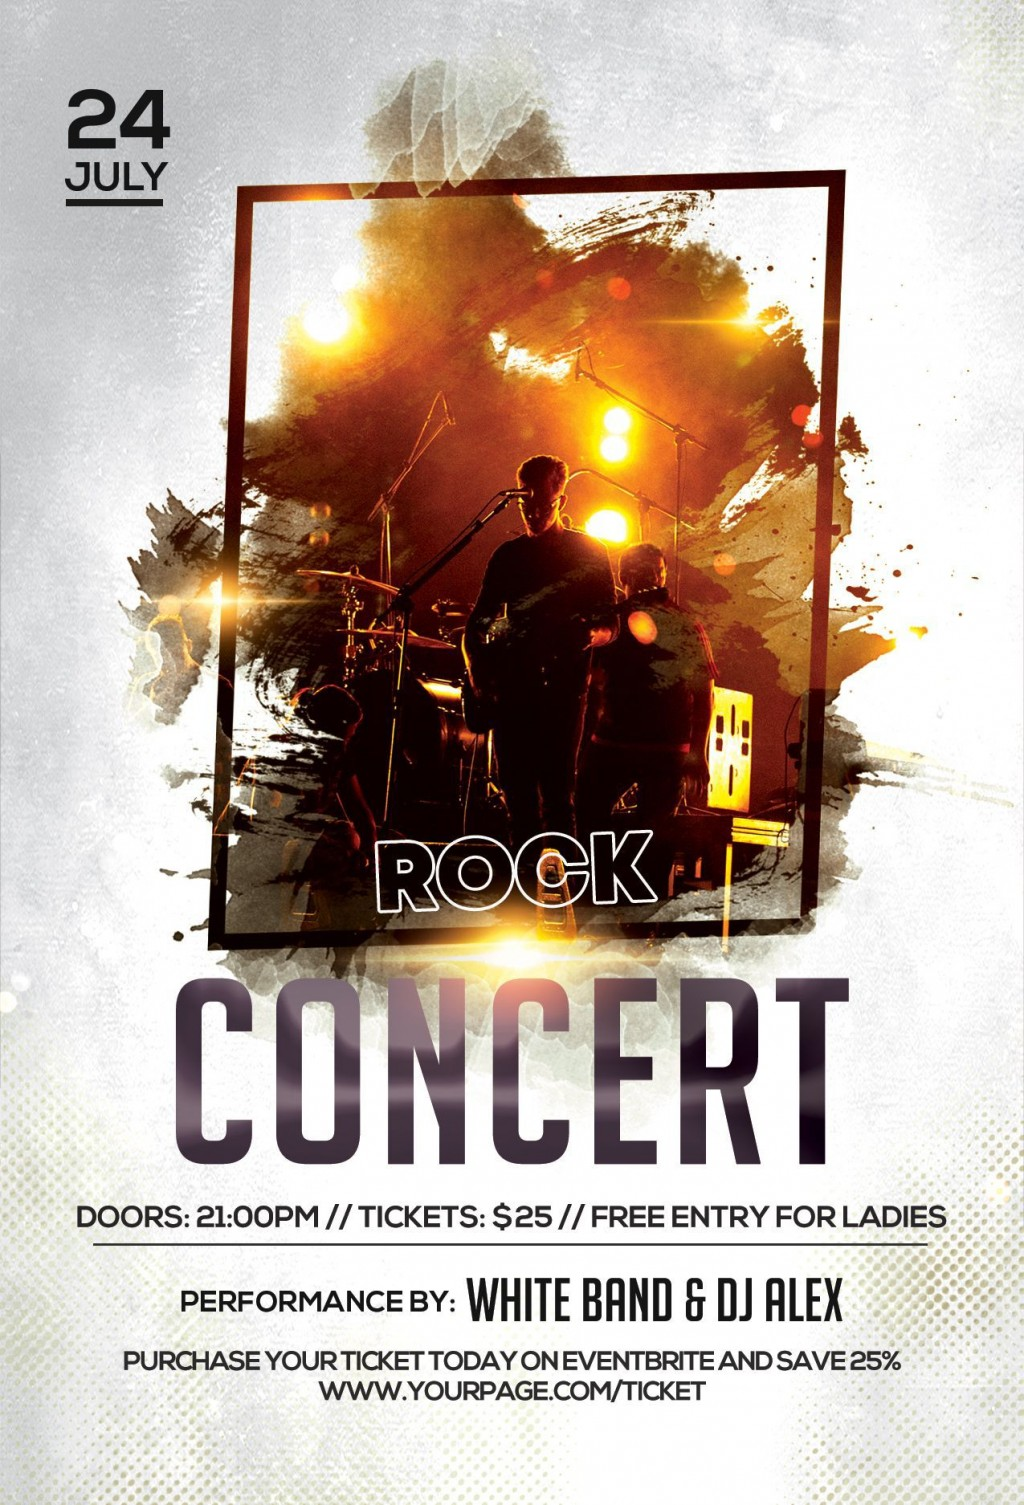 004 Amazing Free Concert Poster Template Highest Quality  Rock Psd Christma PhotoshopLarge